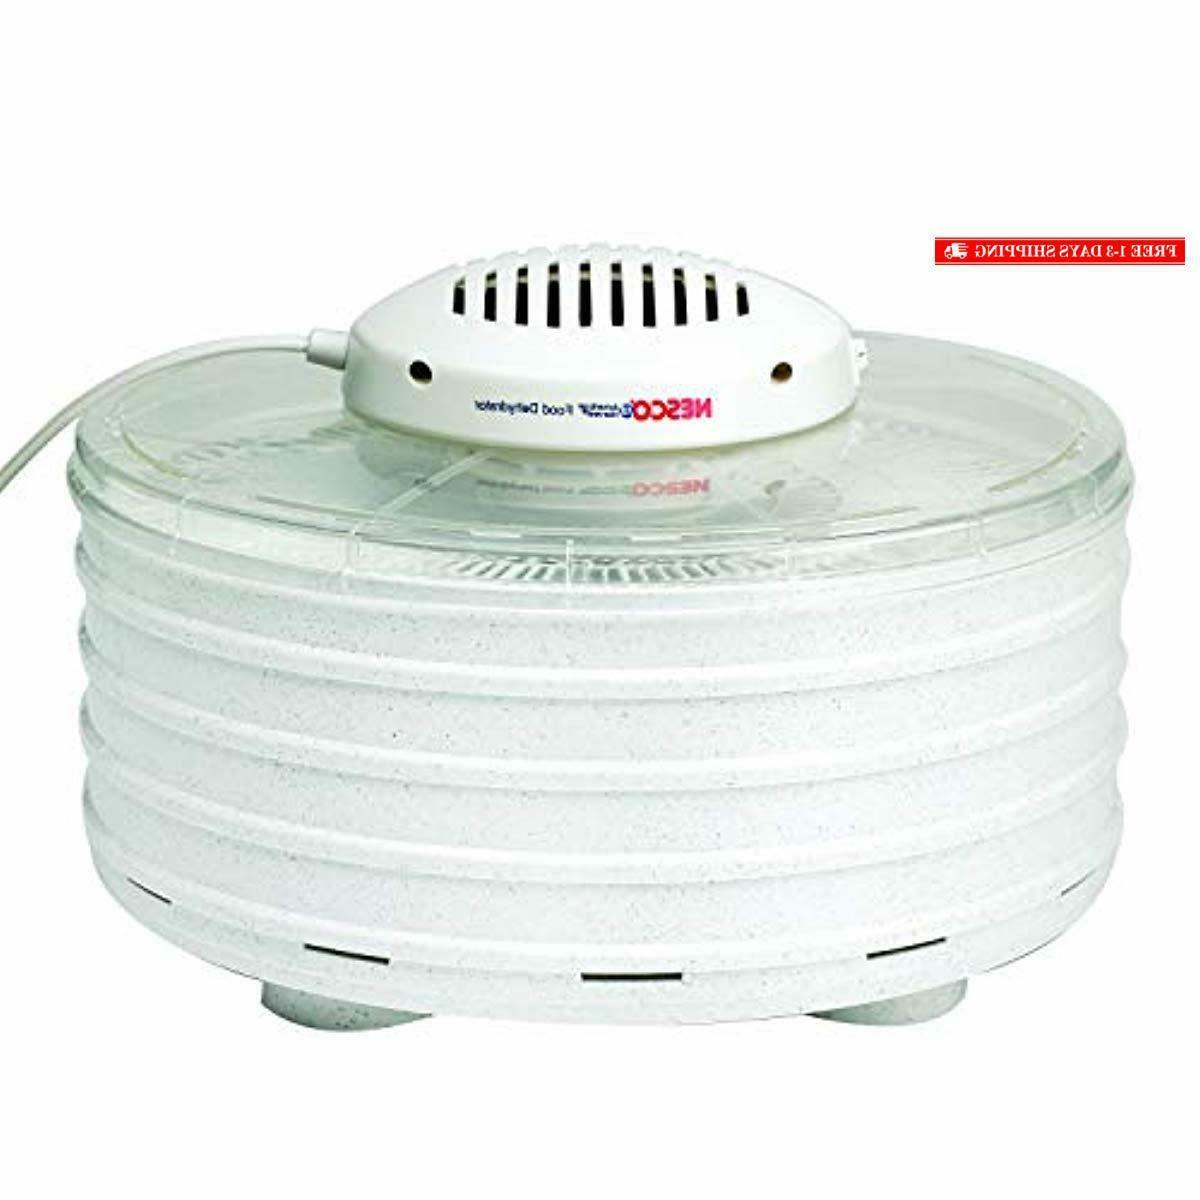 fd 37a food dehydrator white speckled marbled